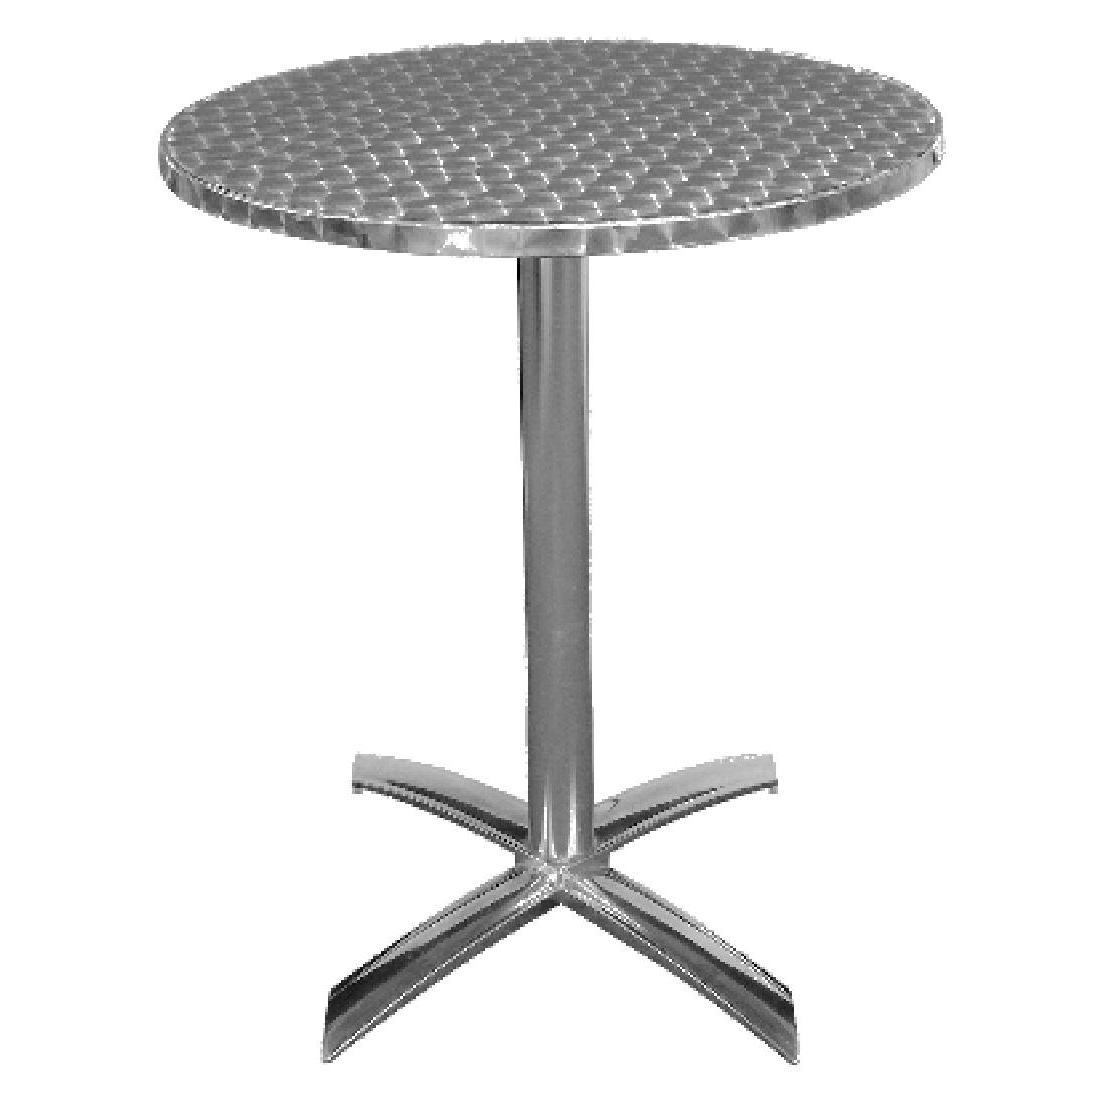 Stainless Steel Flip Top Bistro Table Round or Square Irish